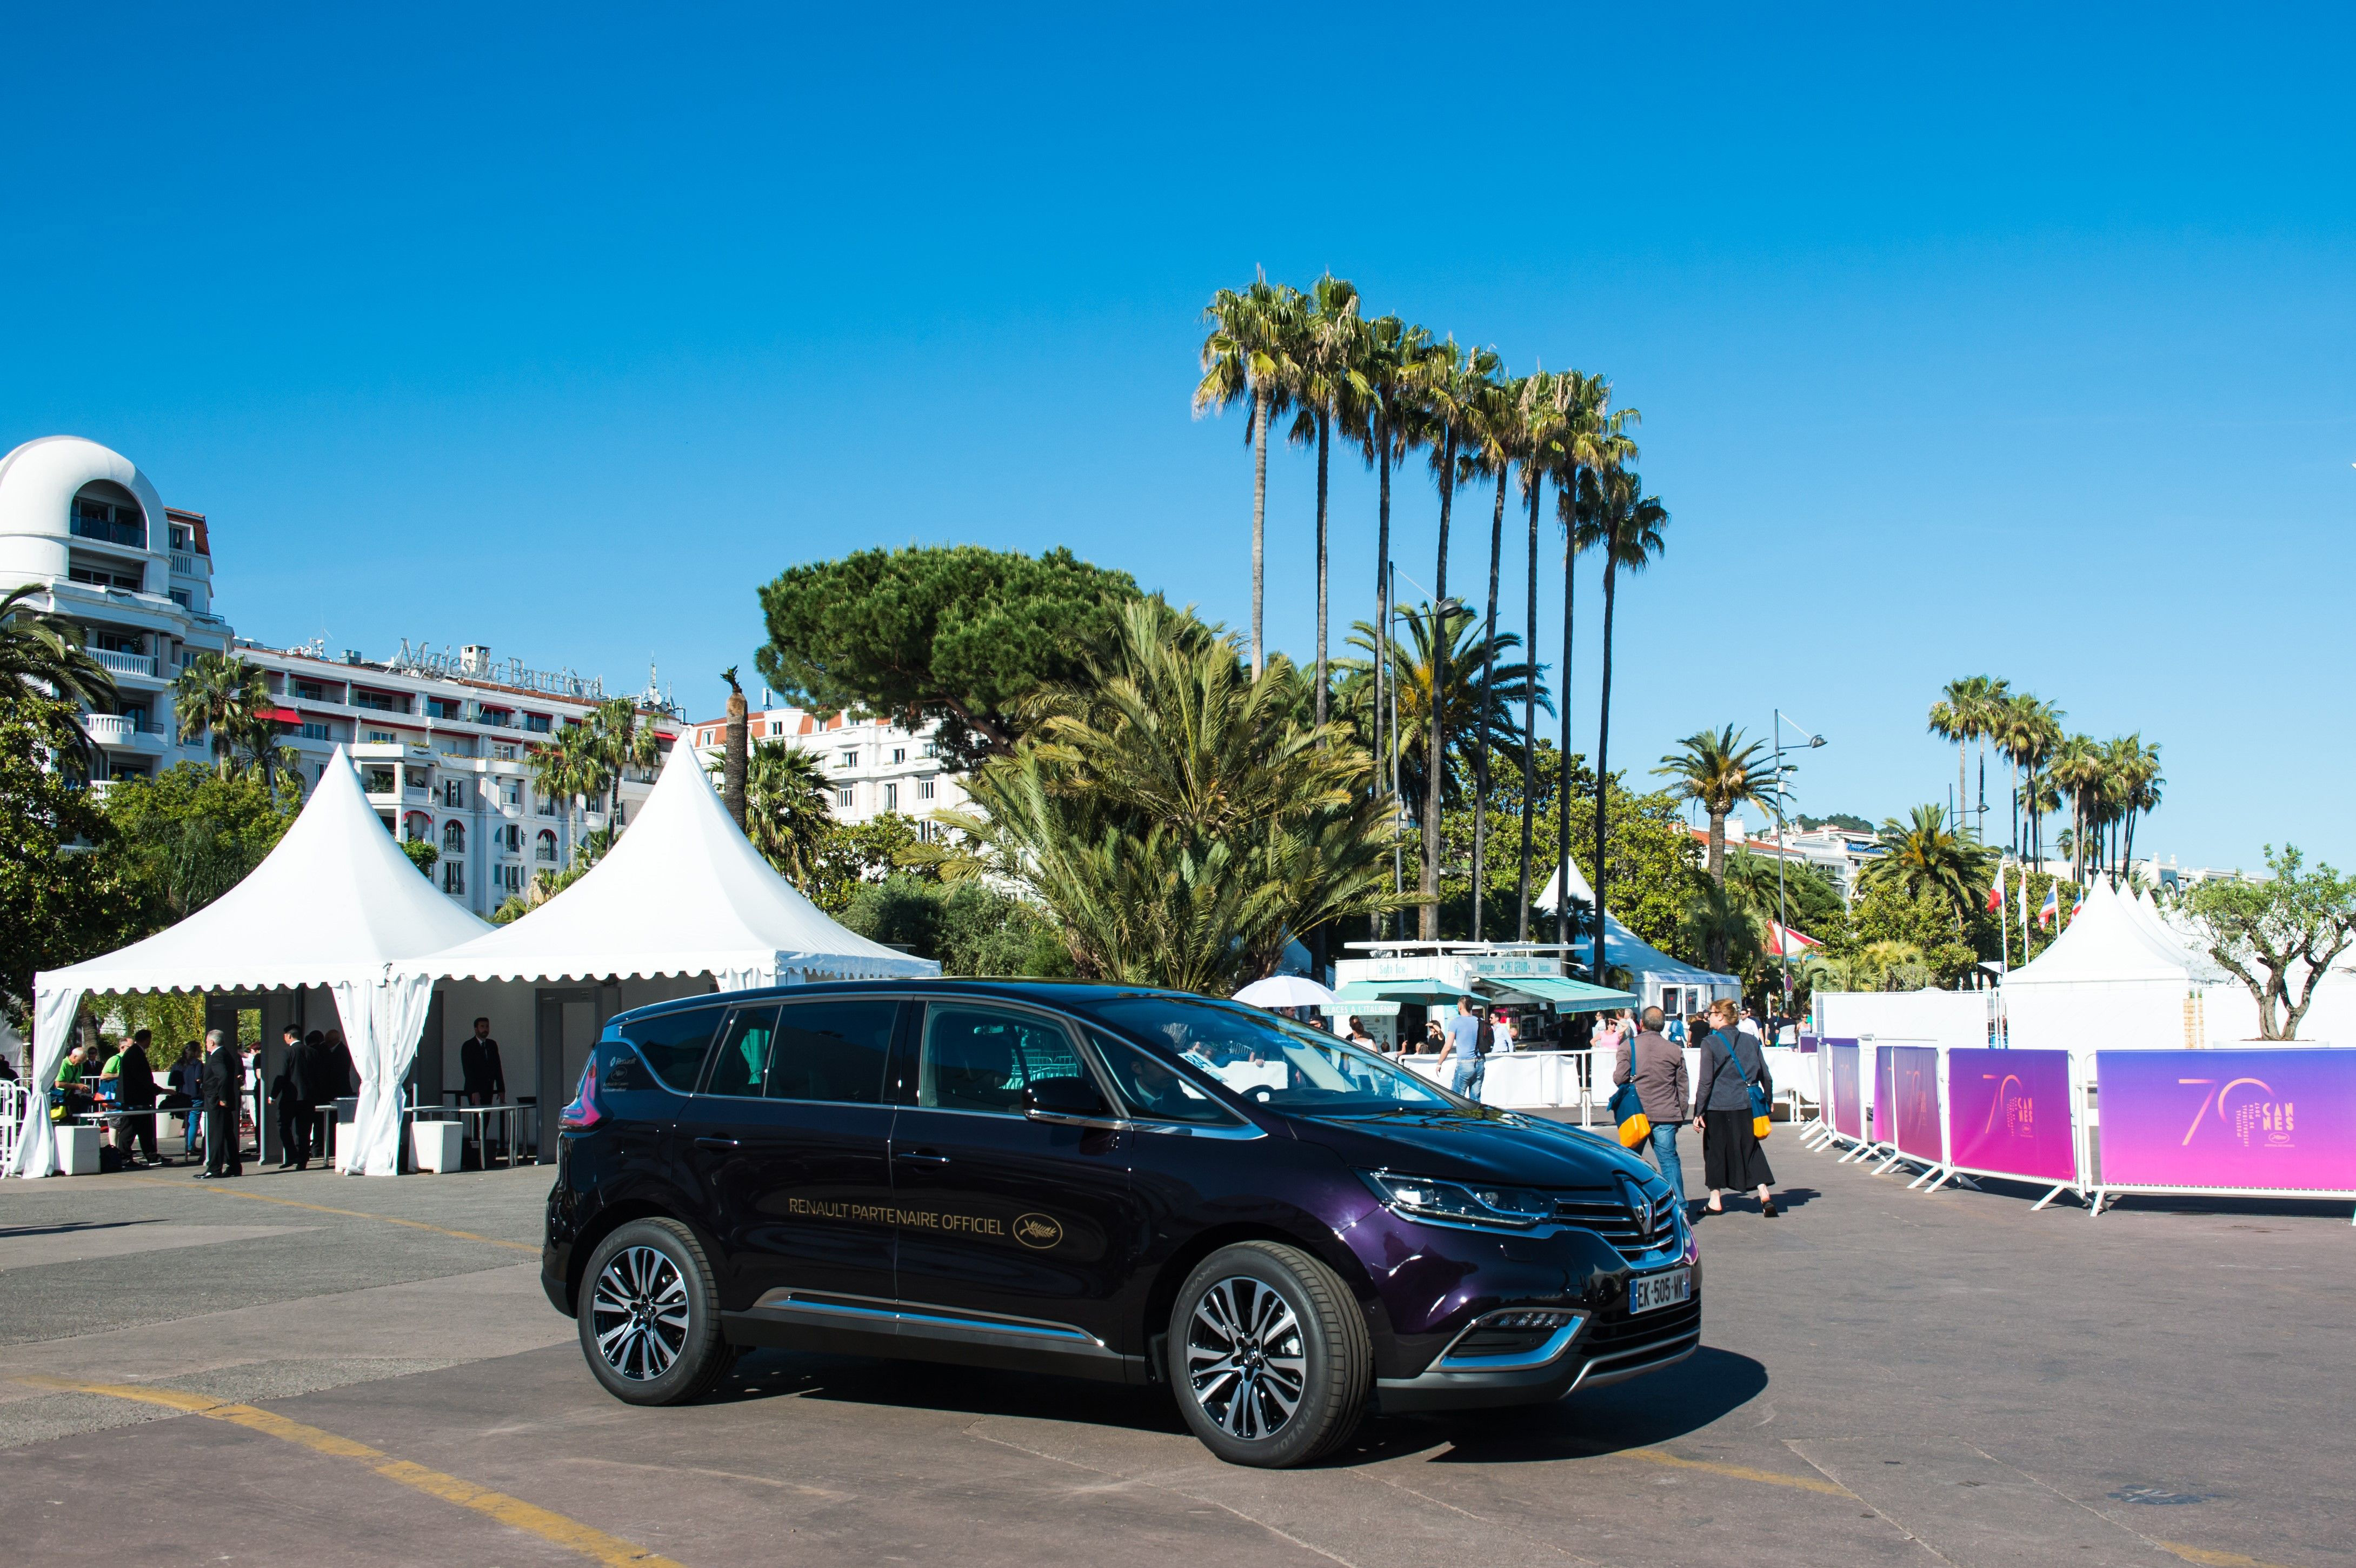 Espace, Renault, Filmfestspiele Cannes, 2017